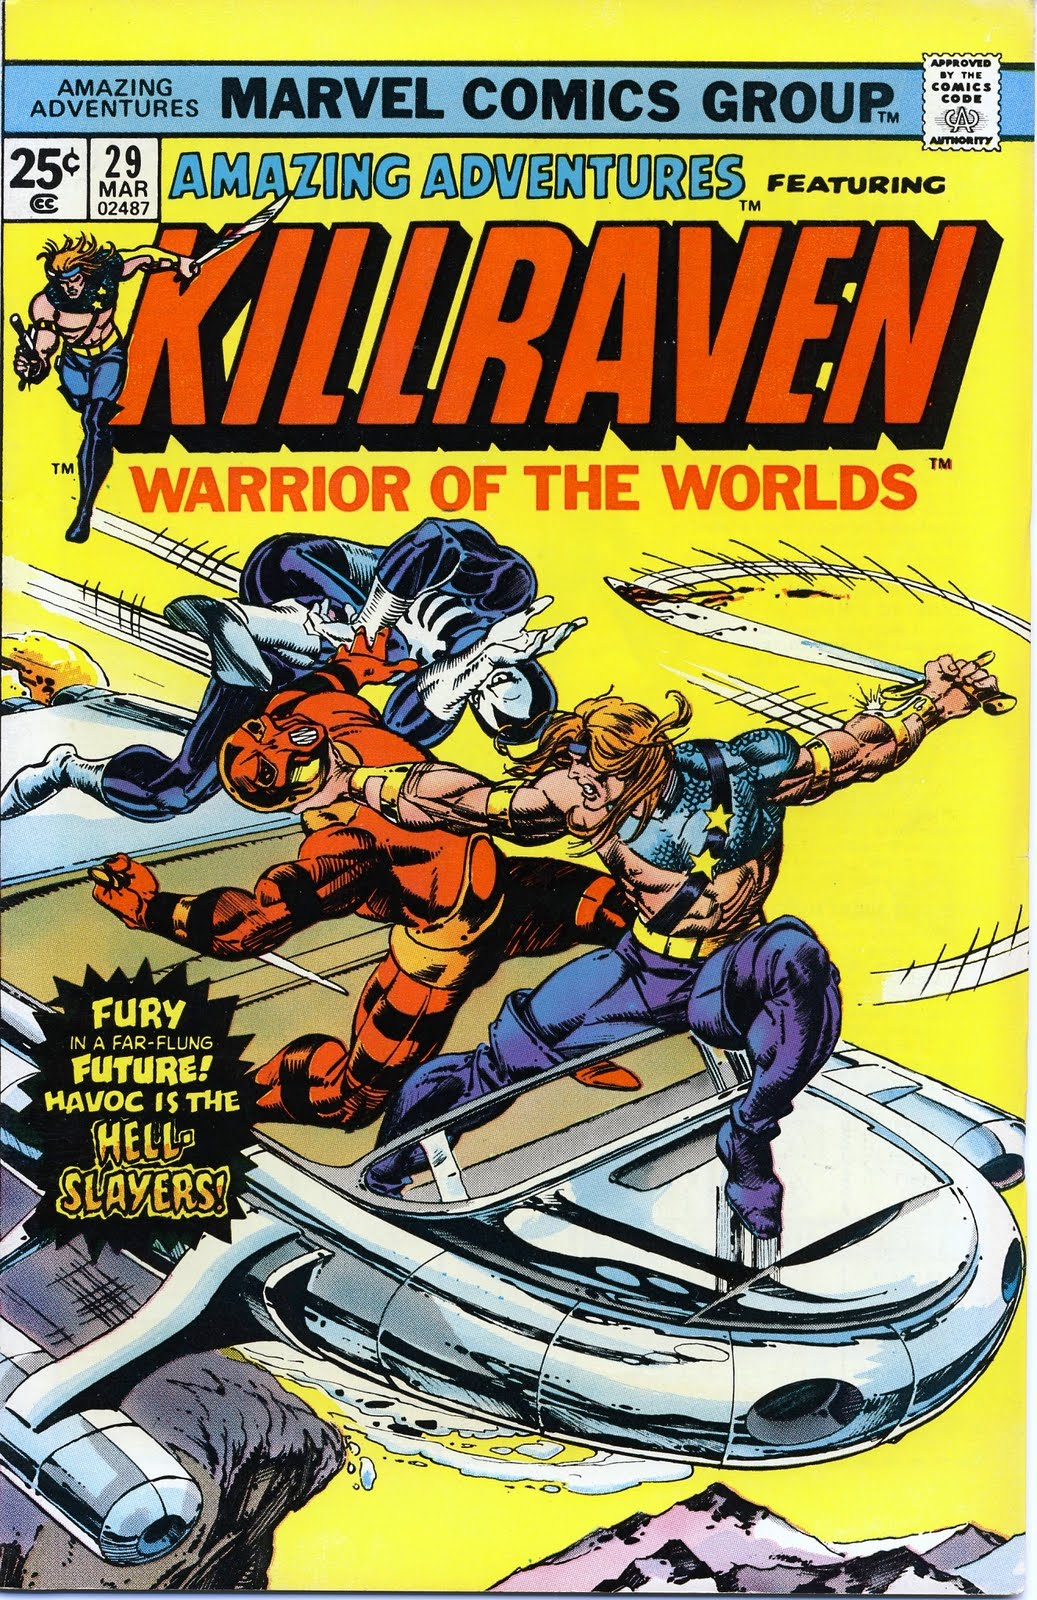 Amazing Adventures - Killraven